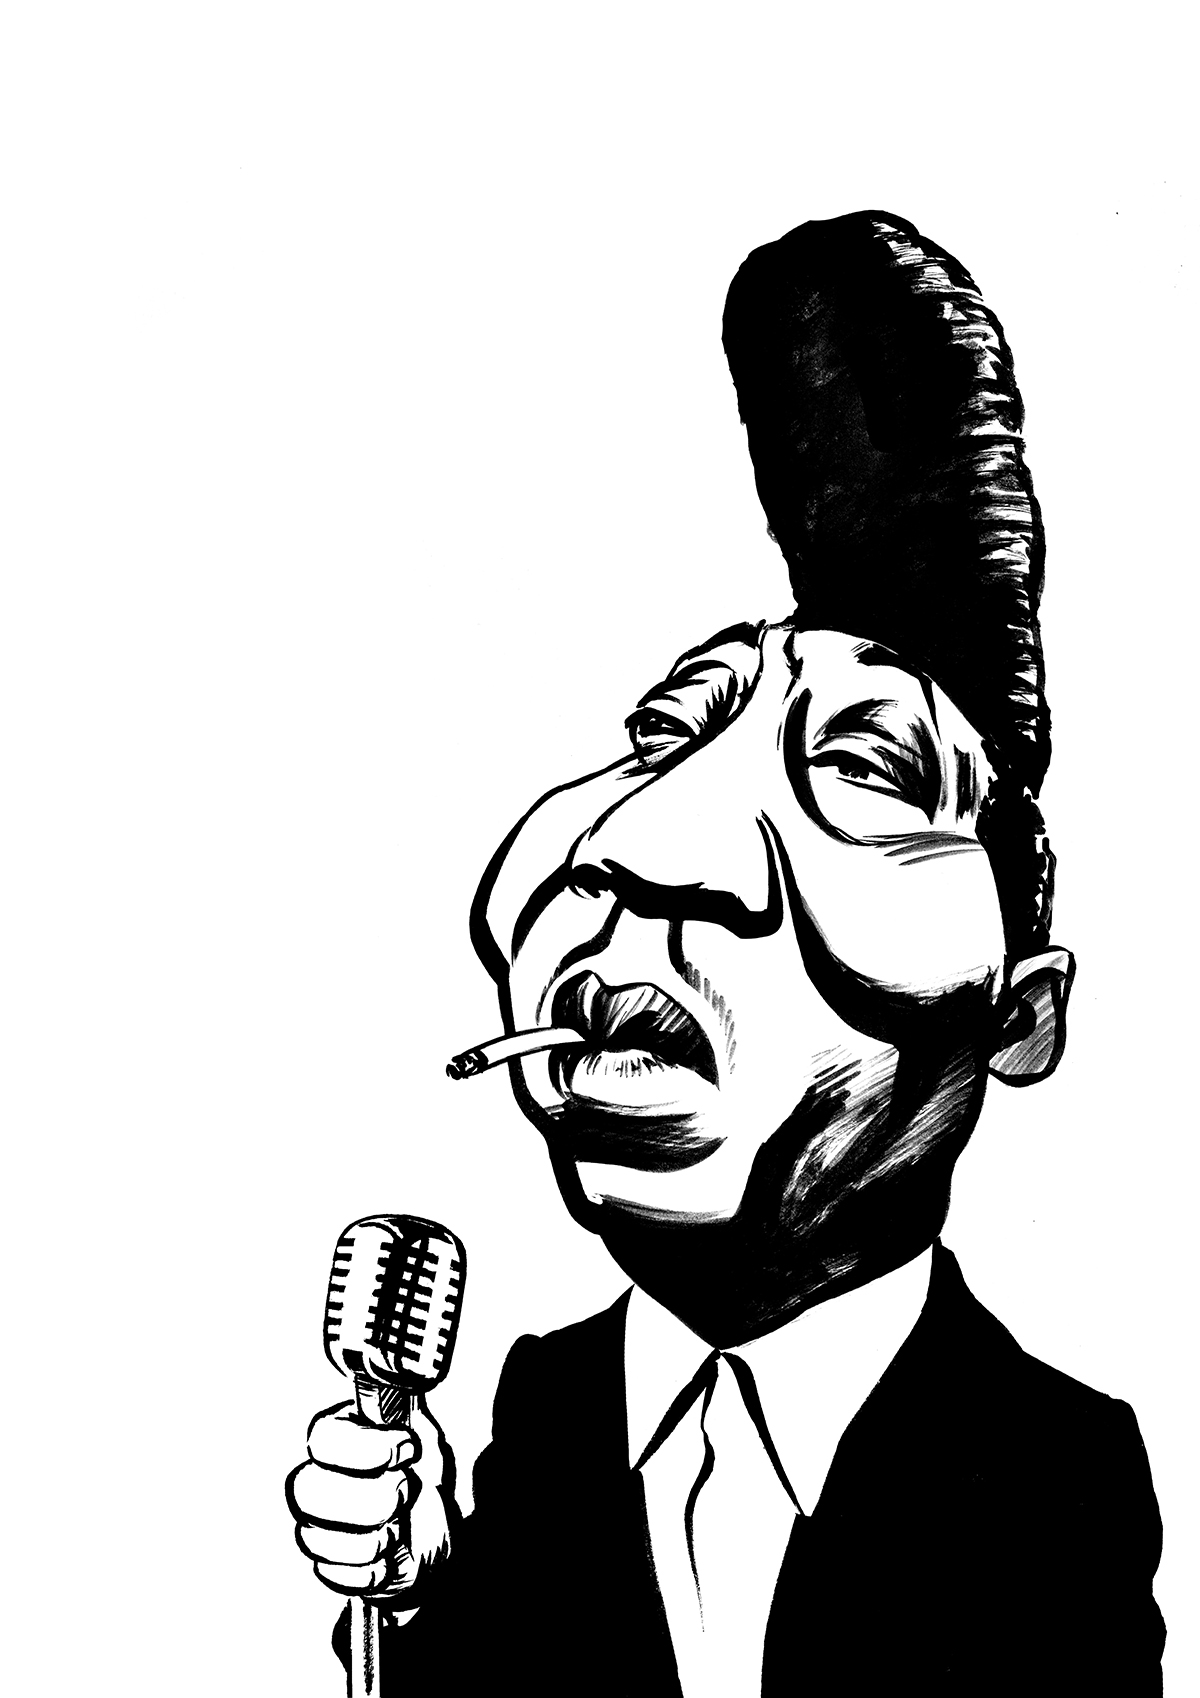 Muddy Waters caricature, delta blues singer, McKinley Morganfield, Chicago bluesman.By Ken Lowe Illustration. Limited edition prints available.